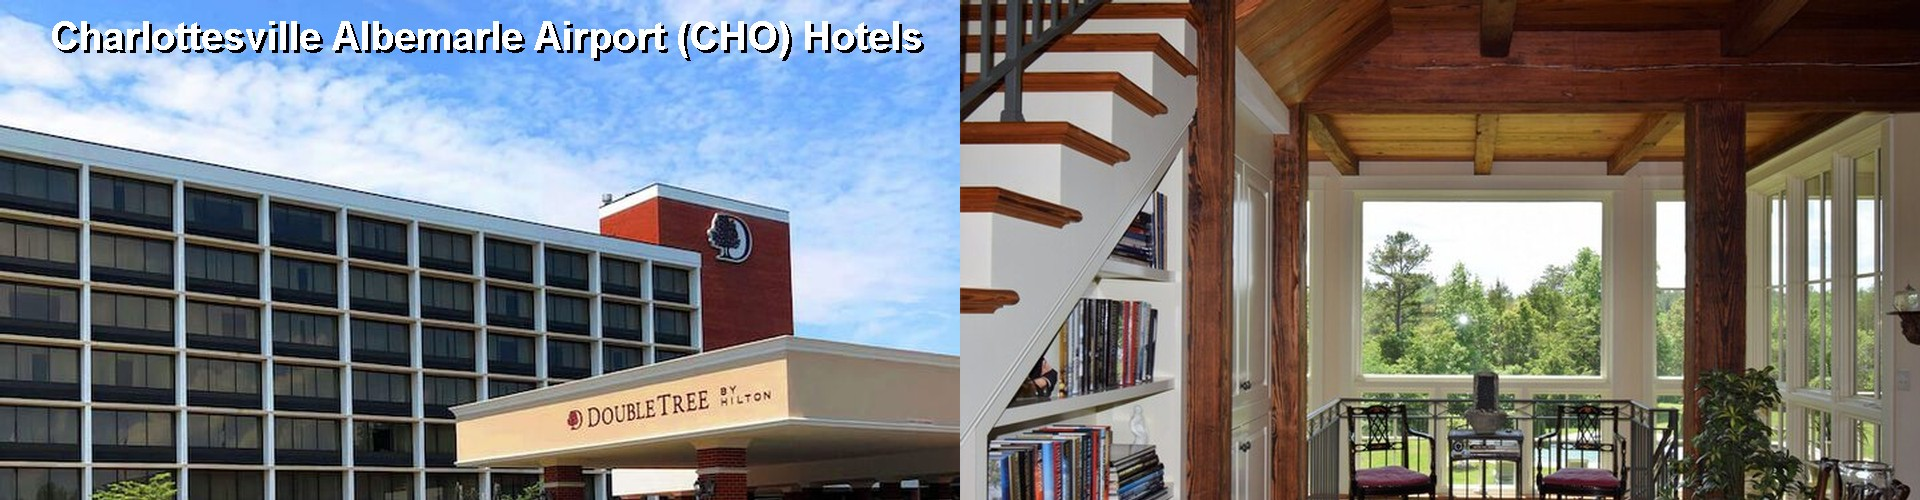 5 Best Hotels near Charlottesville Albemarle Airport (CHO)